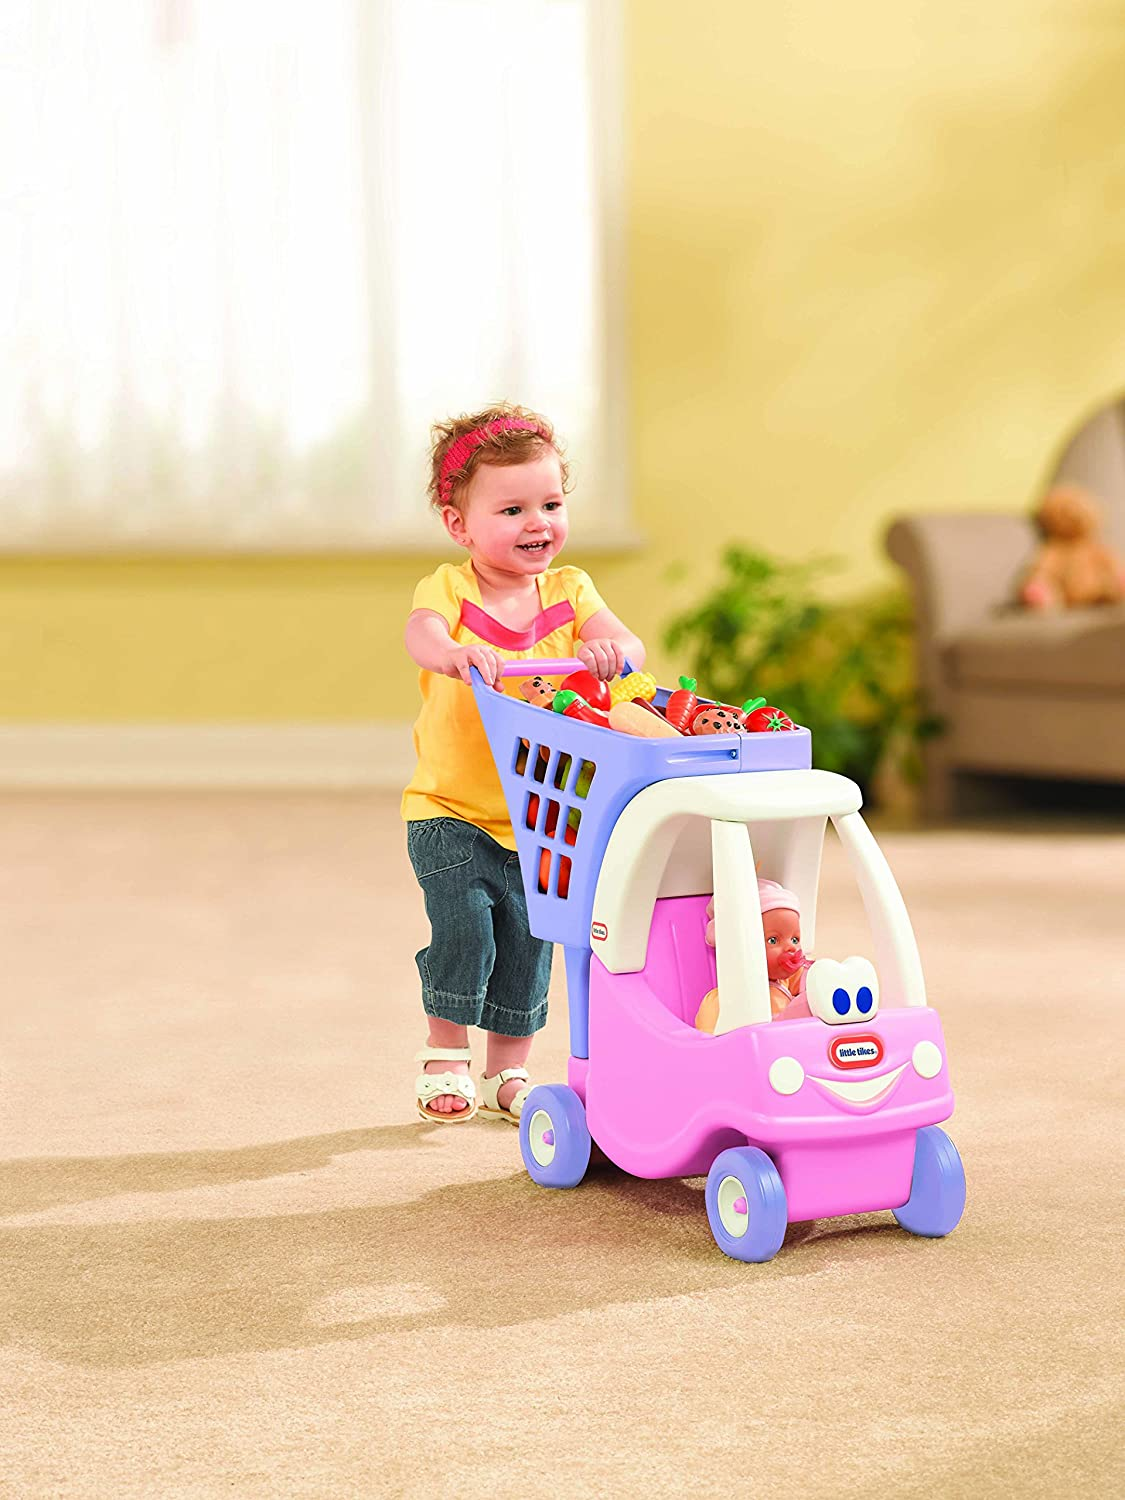 Top Toys For Age 2 : Top christmas gifts for year old girls